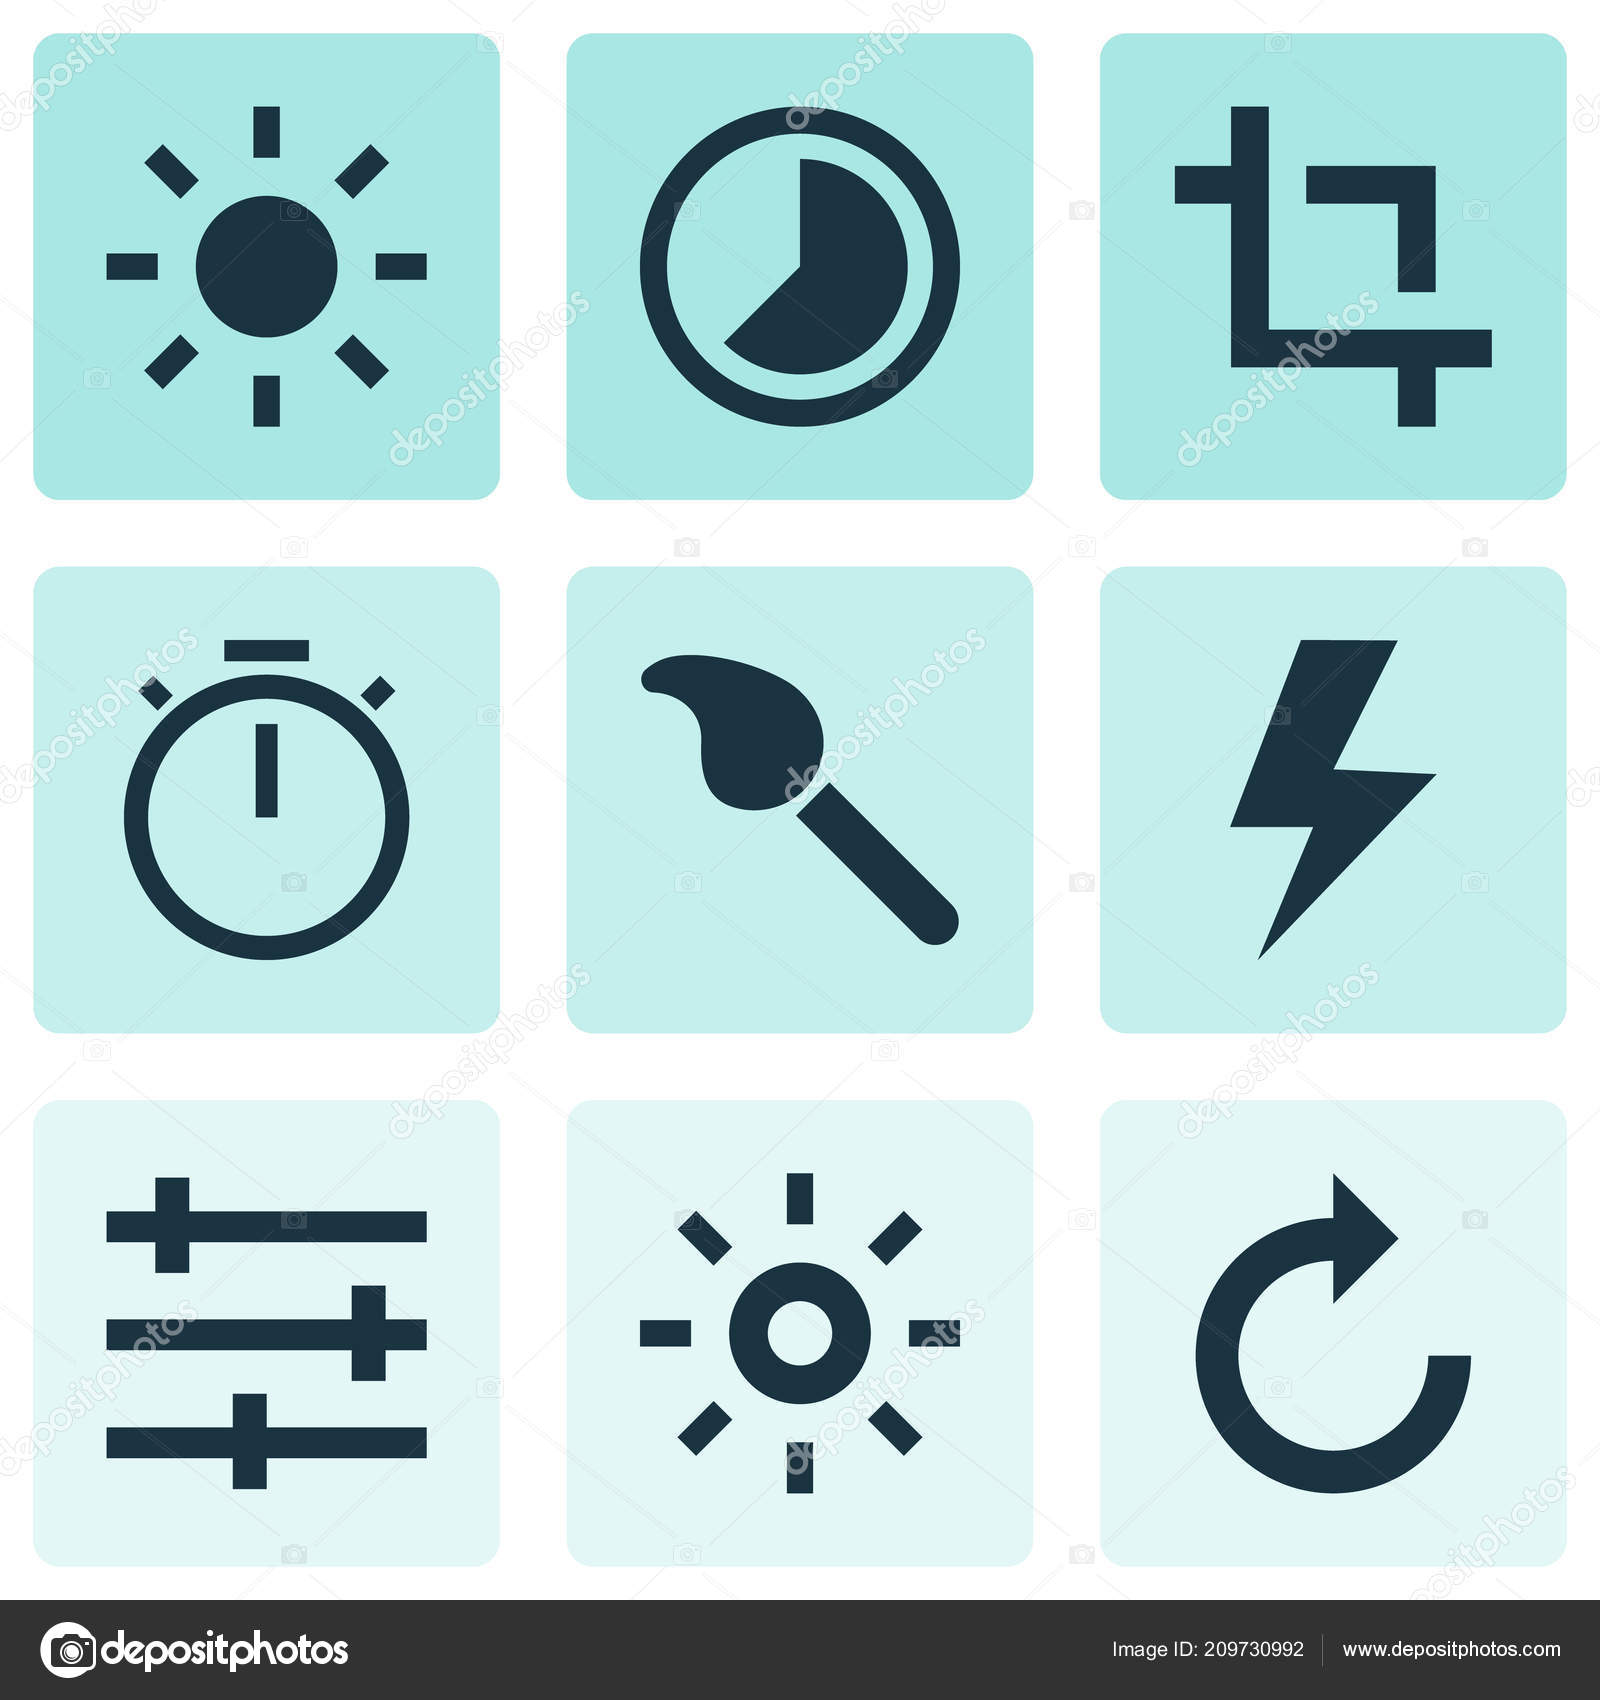 Image icons set with lightning, capture, refresh right and